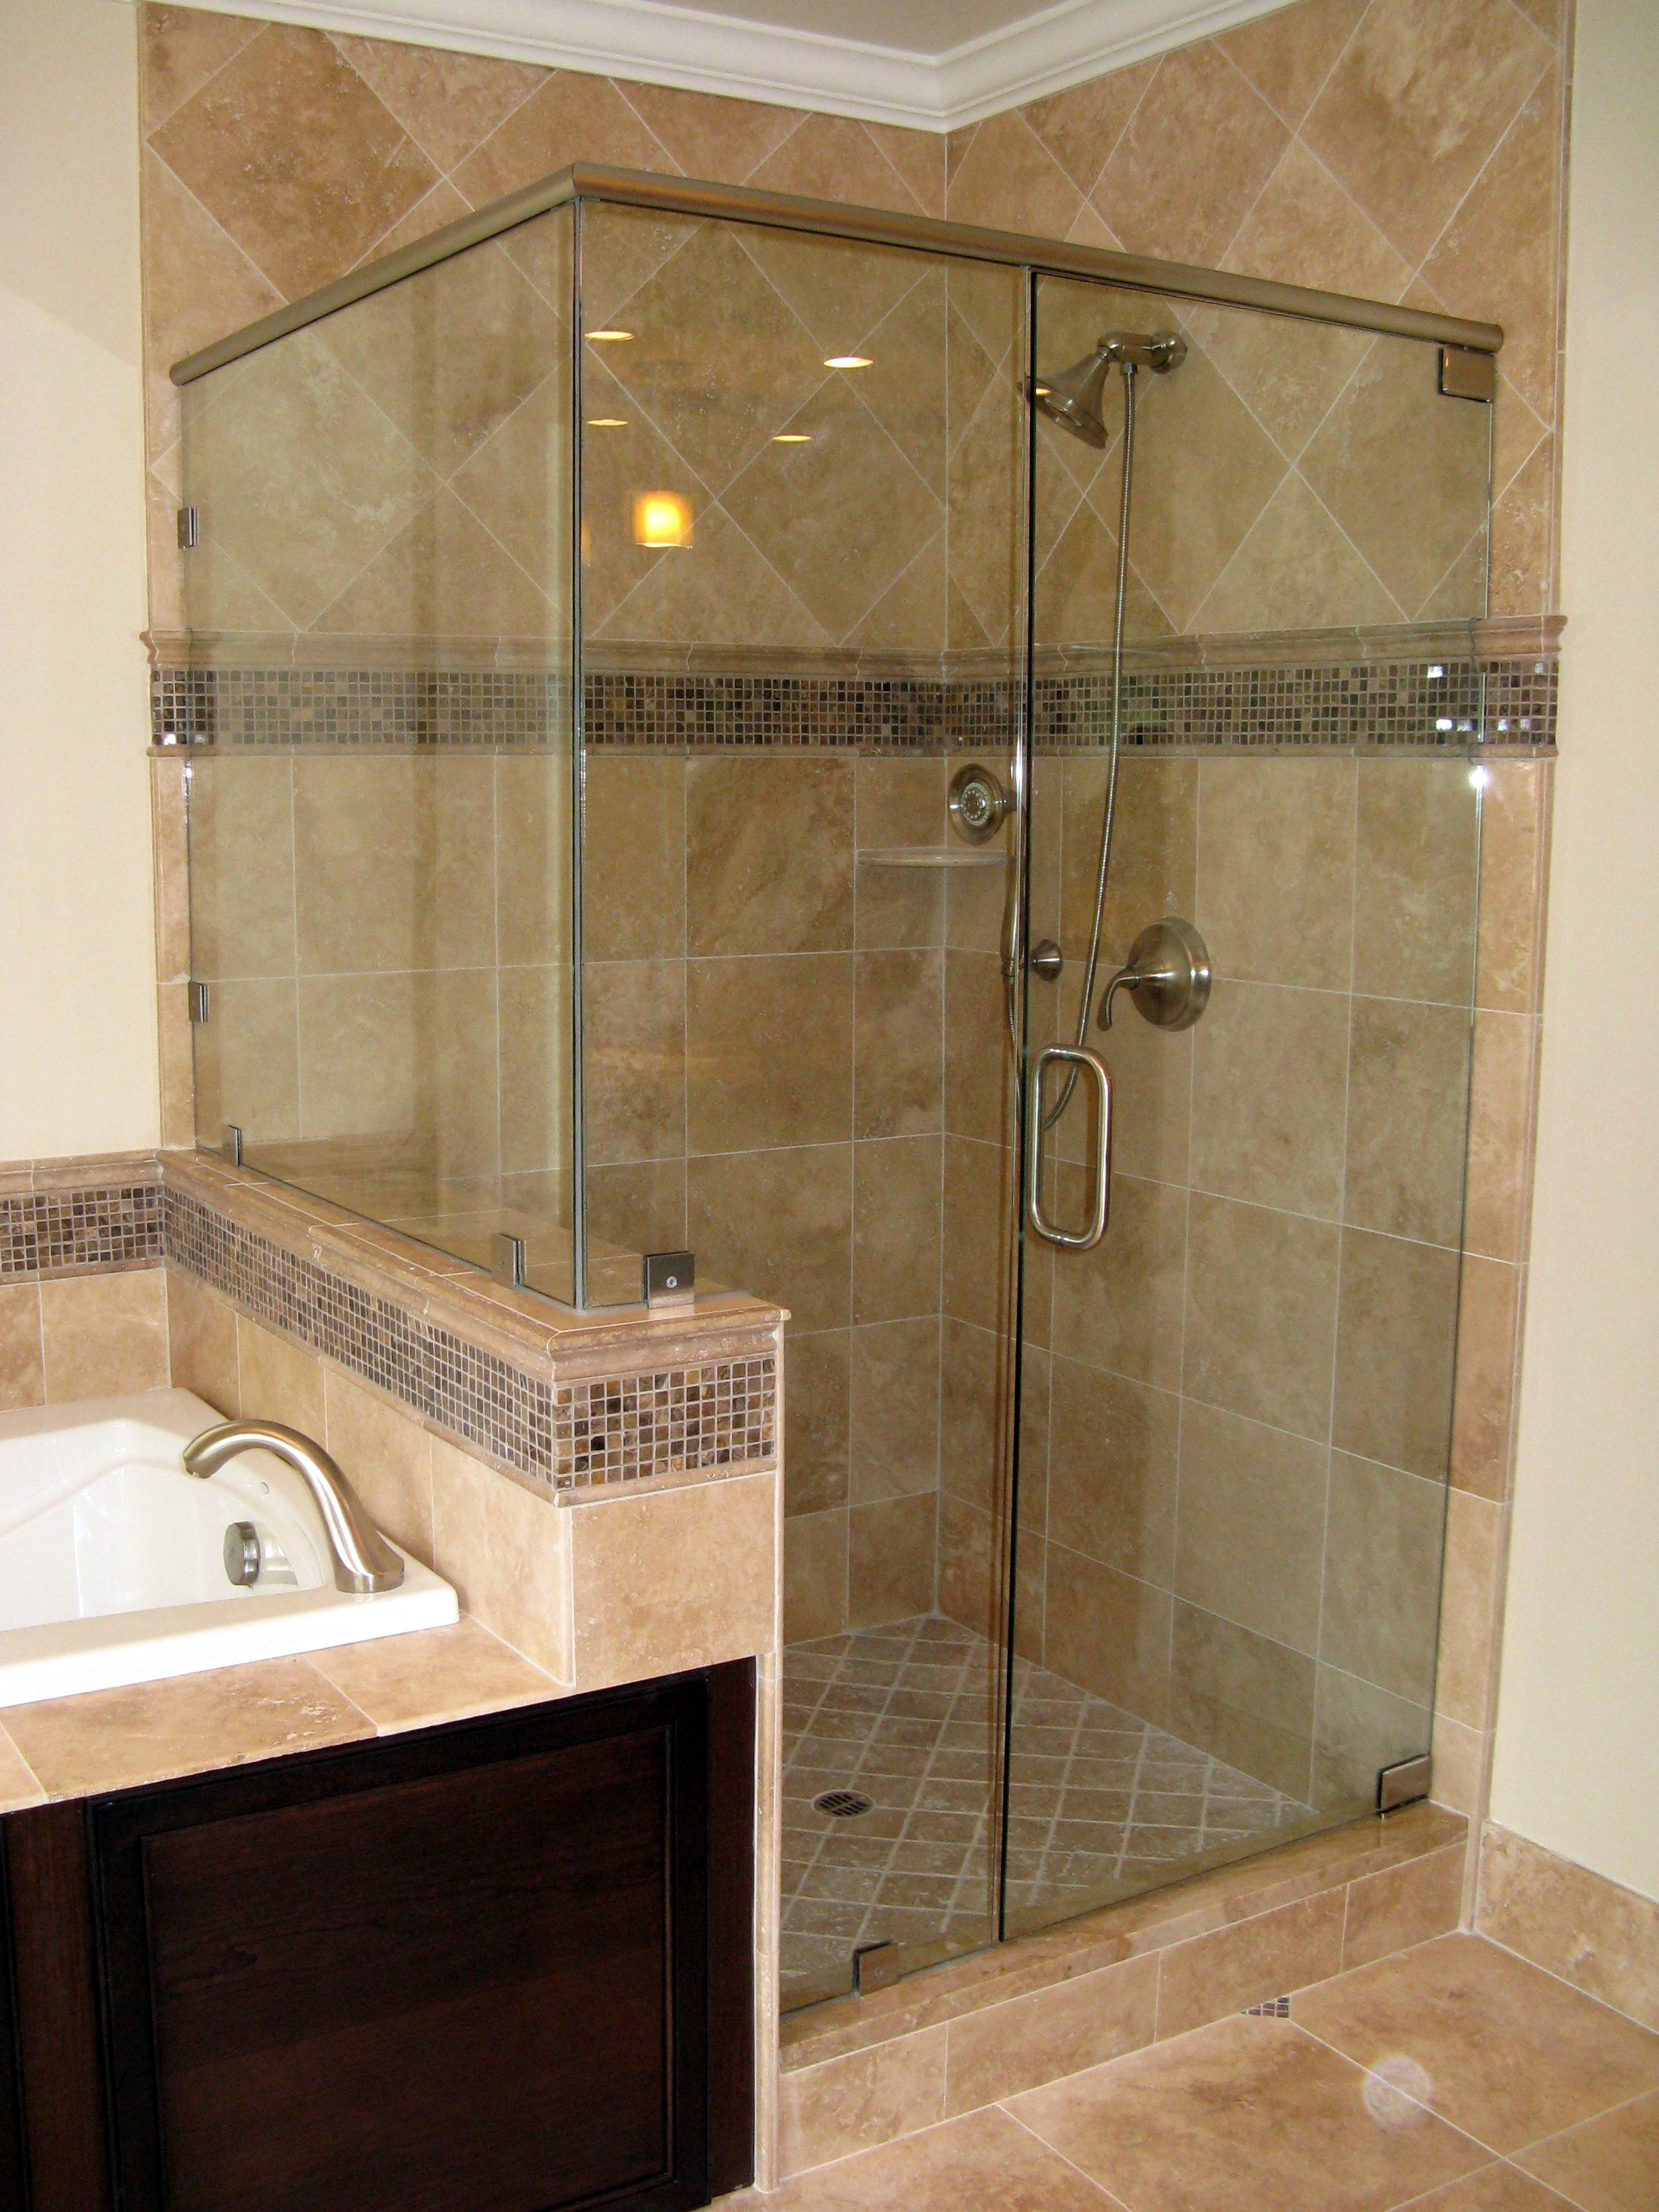 Glass shower wall | Home Design | Pinterest | Walls, House and ...